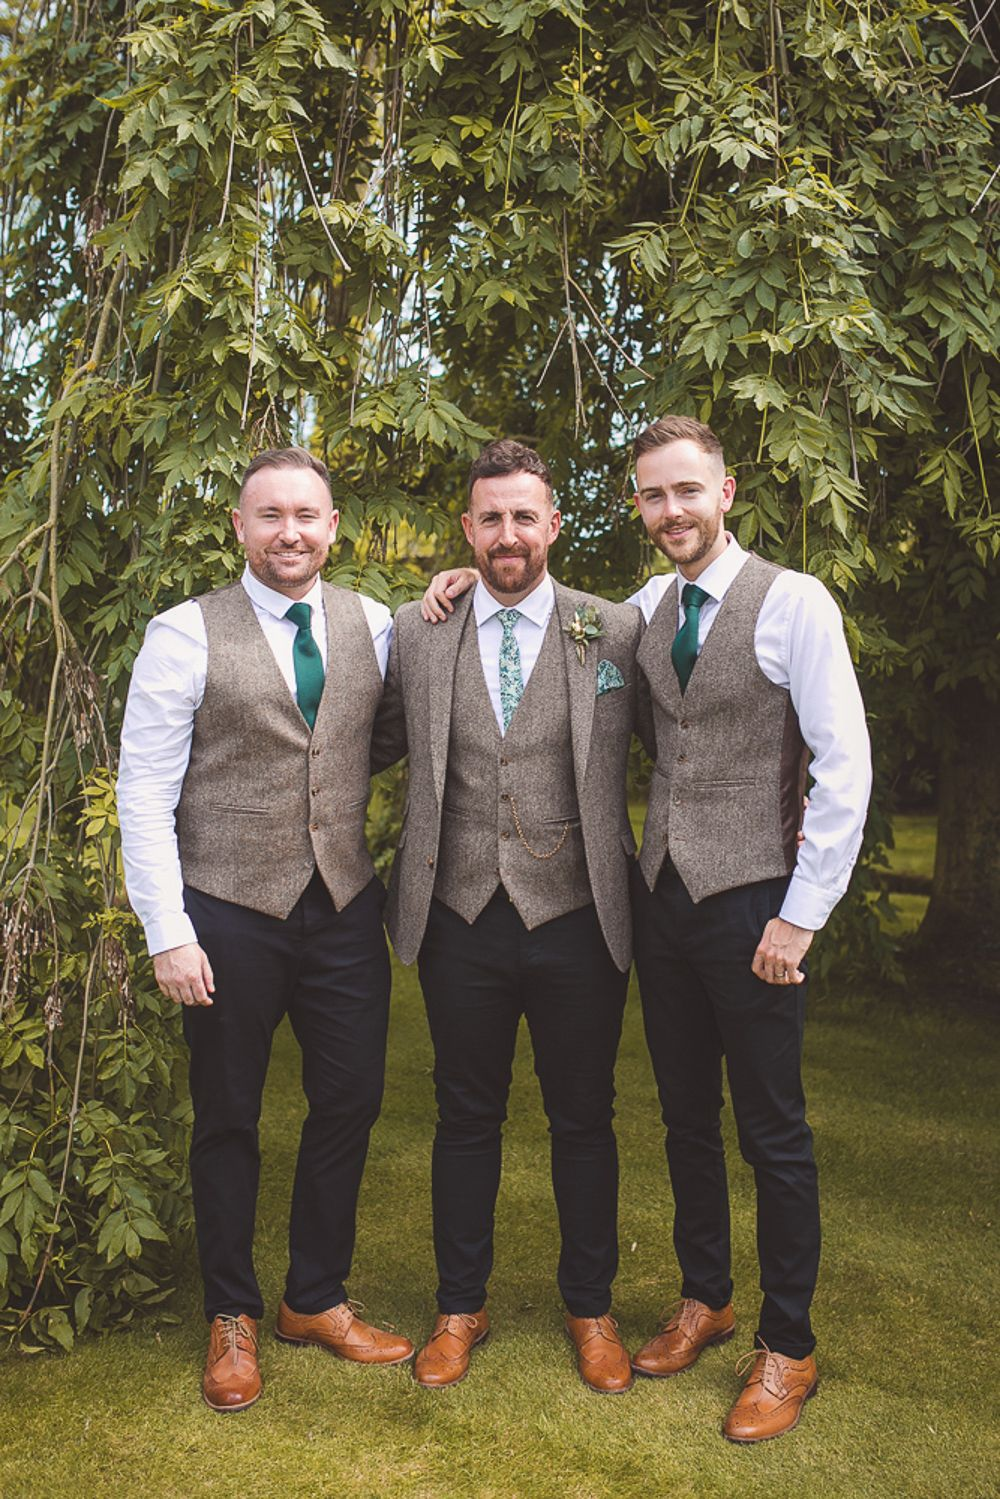 Rustic Groomsmen Rustic Wedding Attire Wedding Attire Guest Rustic Wedding Groomsmen